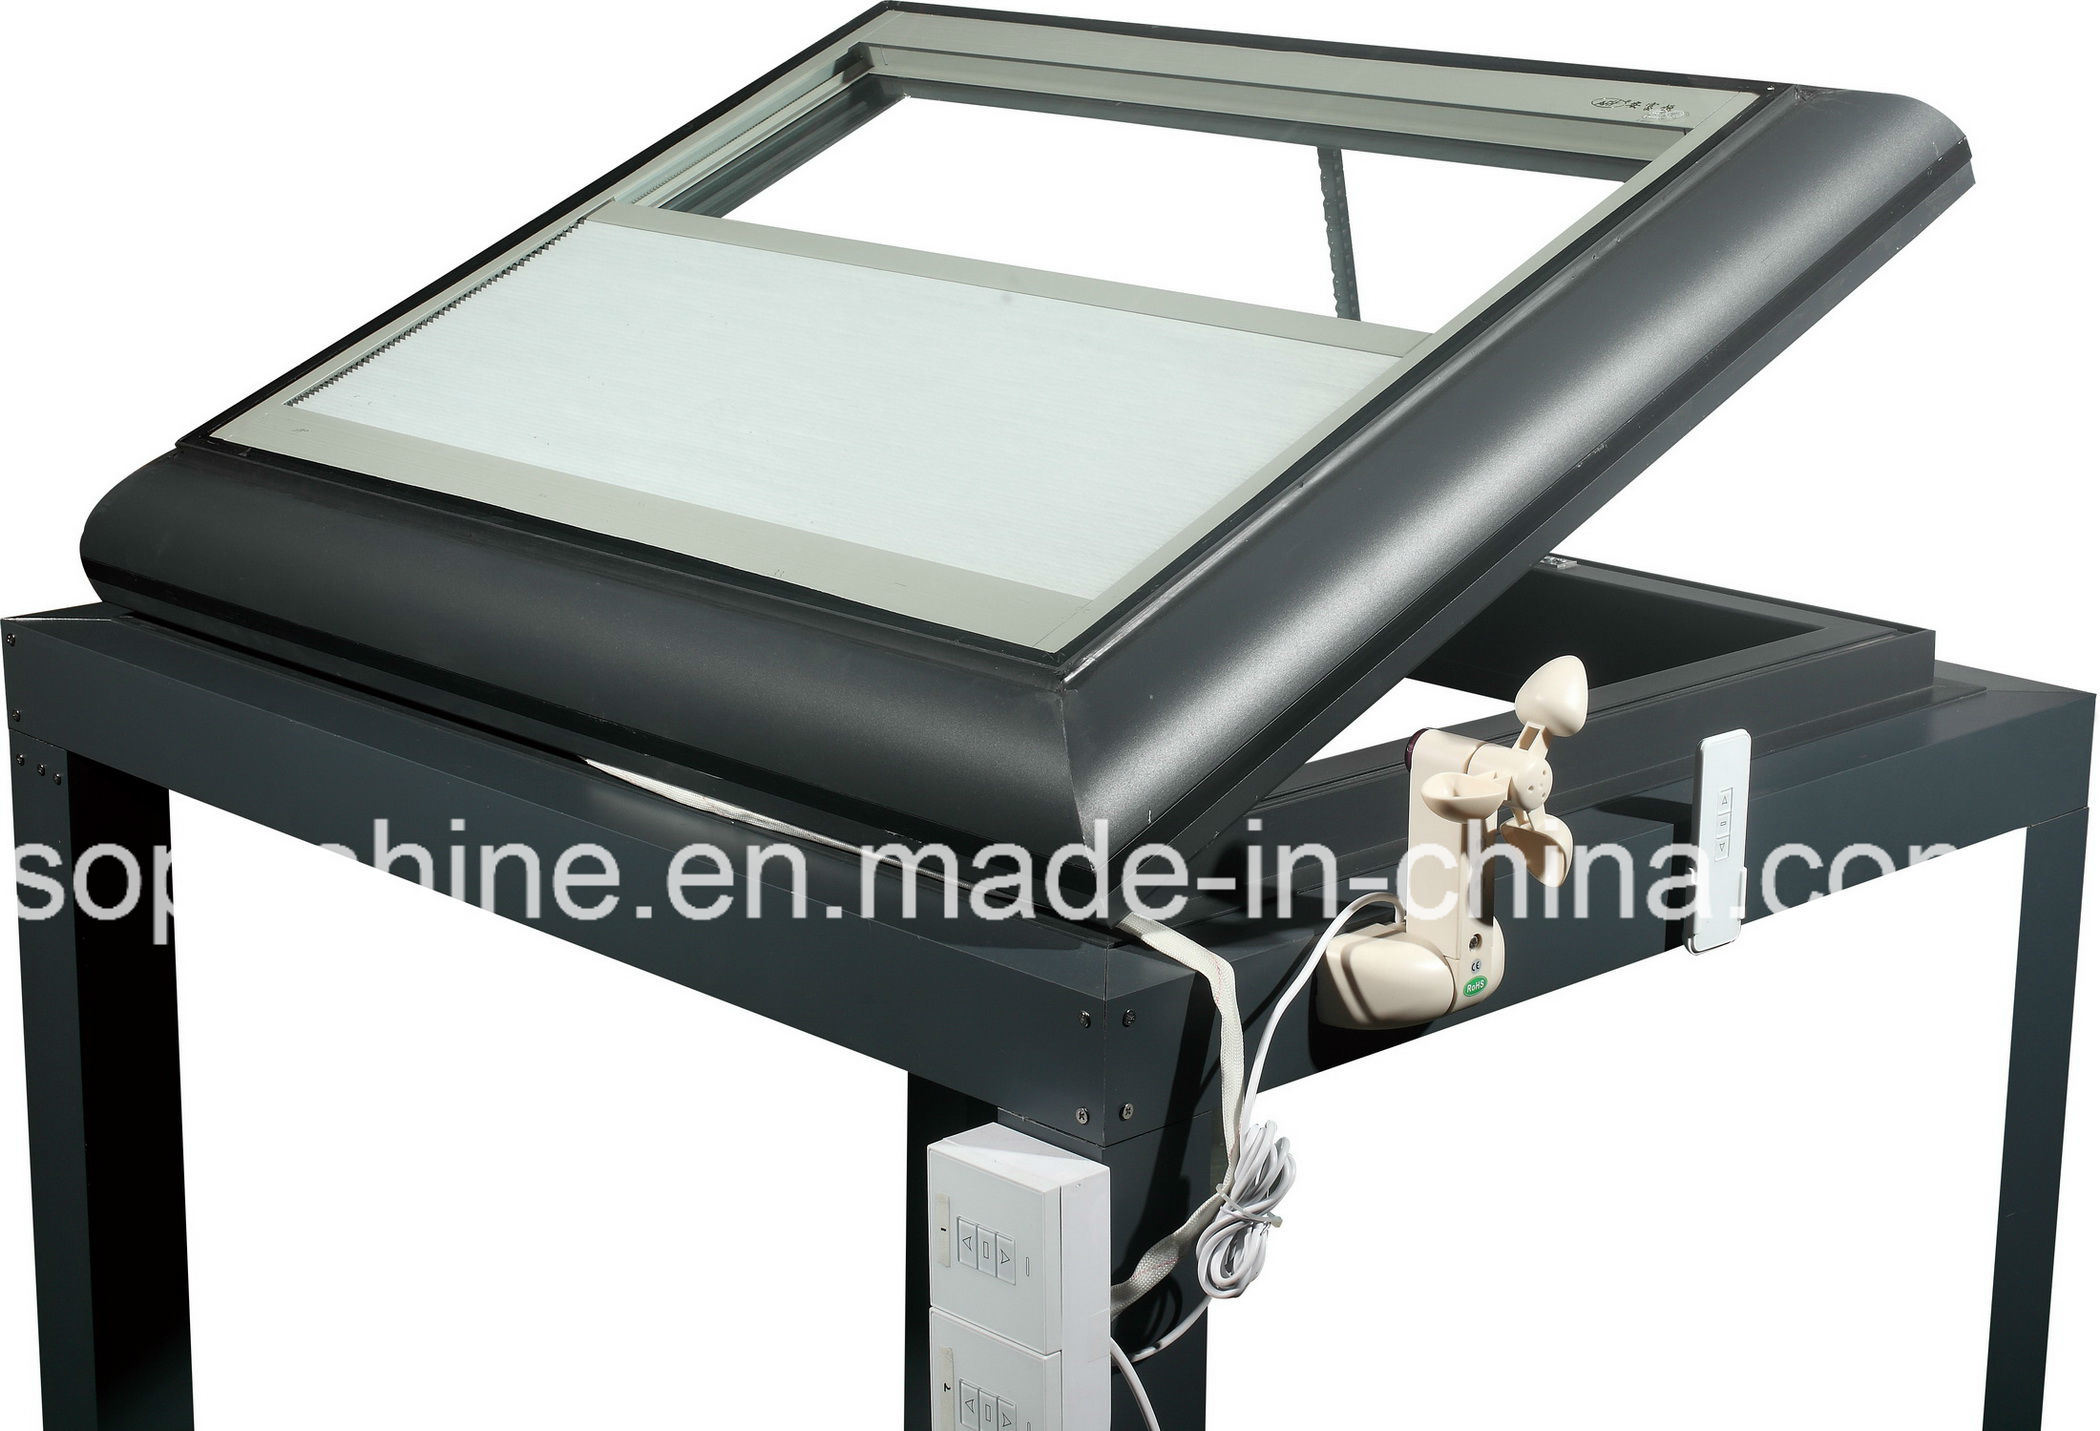 Automatic Skylight with Auto Close System/Built in Cellular Shades in Insulated Glass